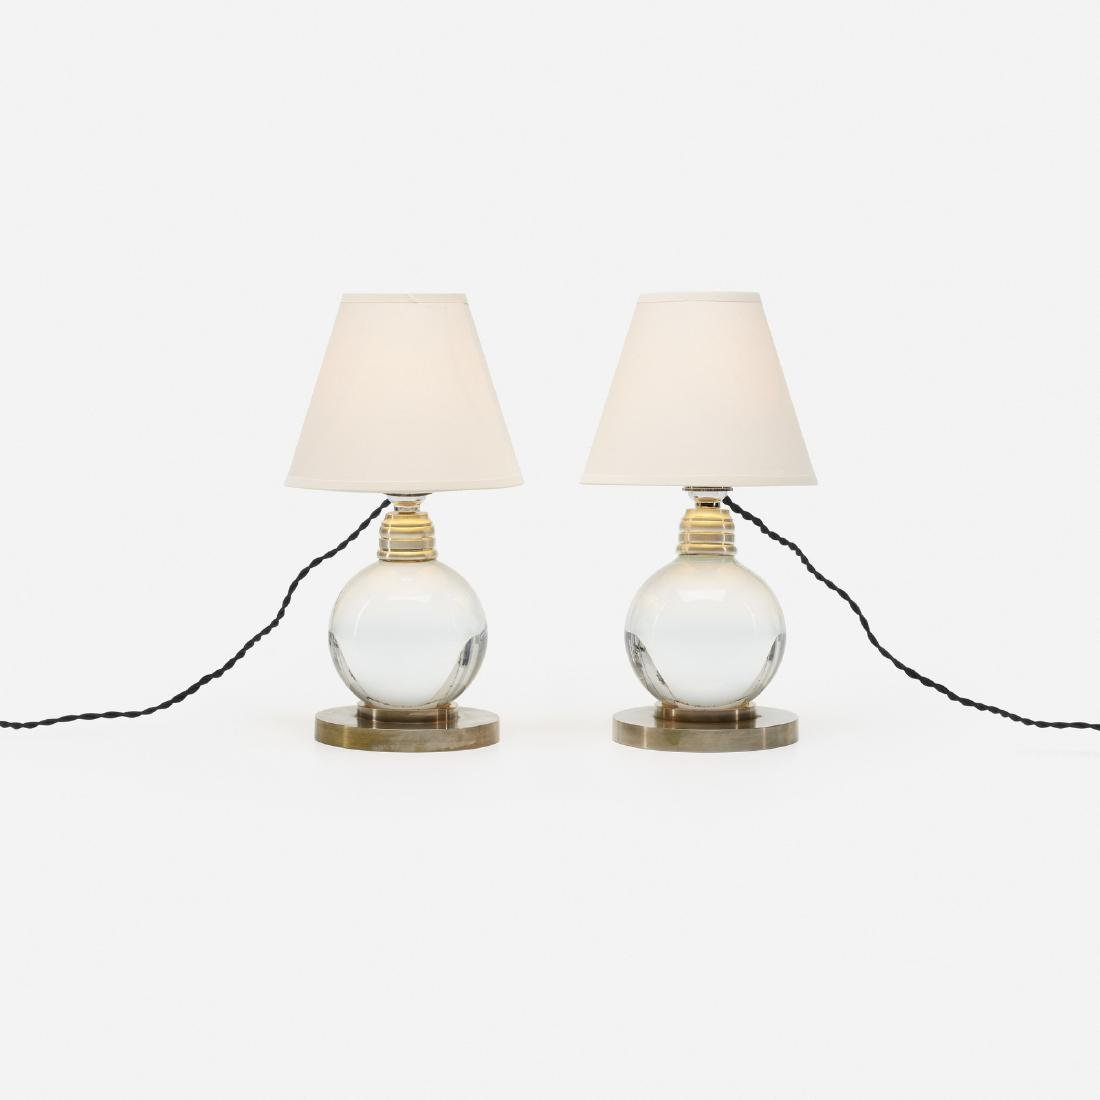 Jacques Adnet, table lamps model 7706, pair